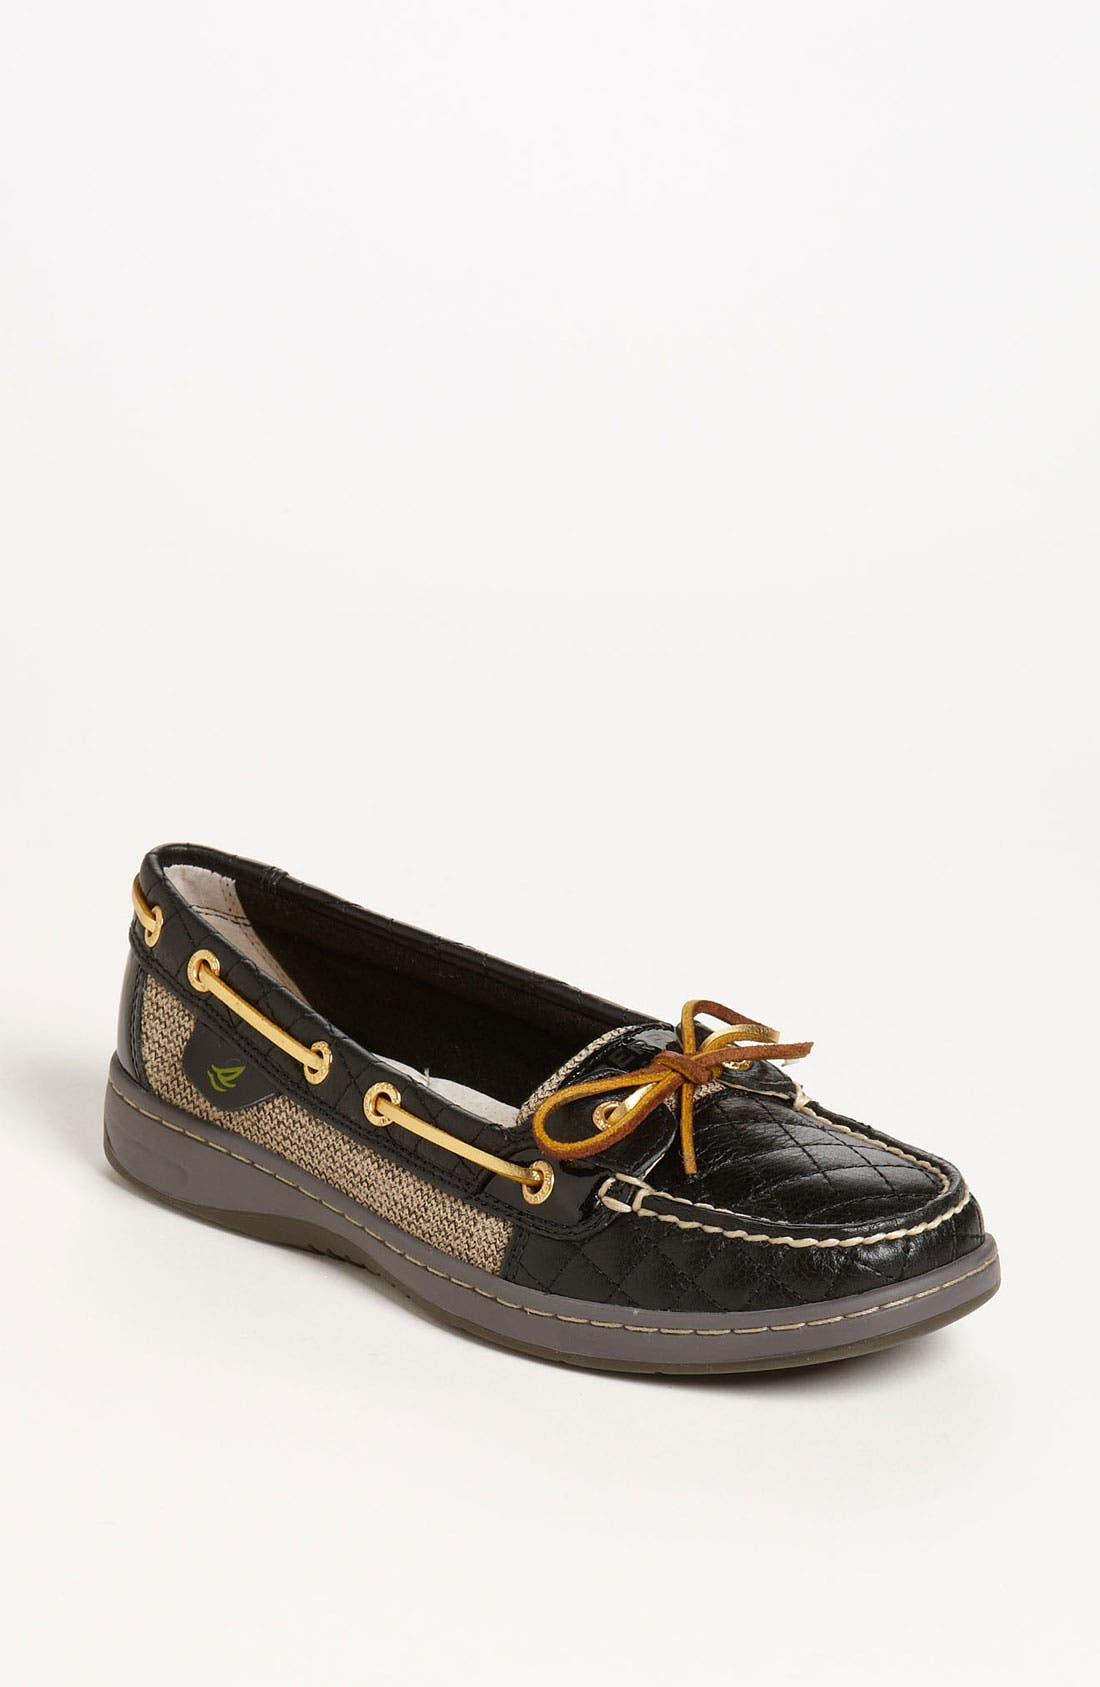 Top-Sider<sup>®</sup> 'Angelfish - Quilted' Boat Shoe,                         Main,                         color,